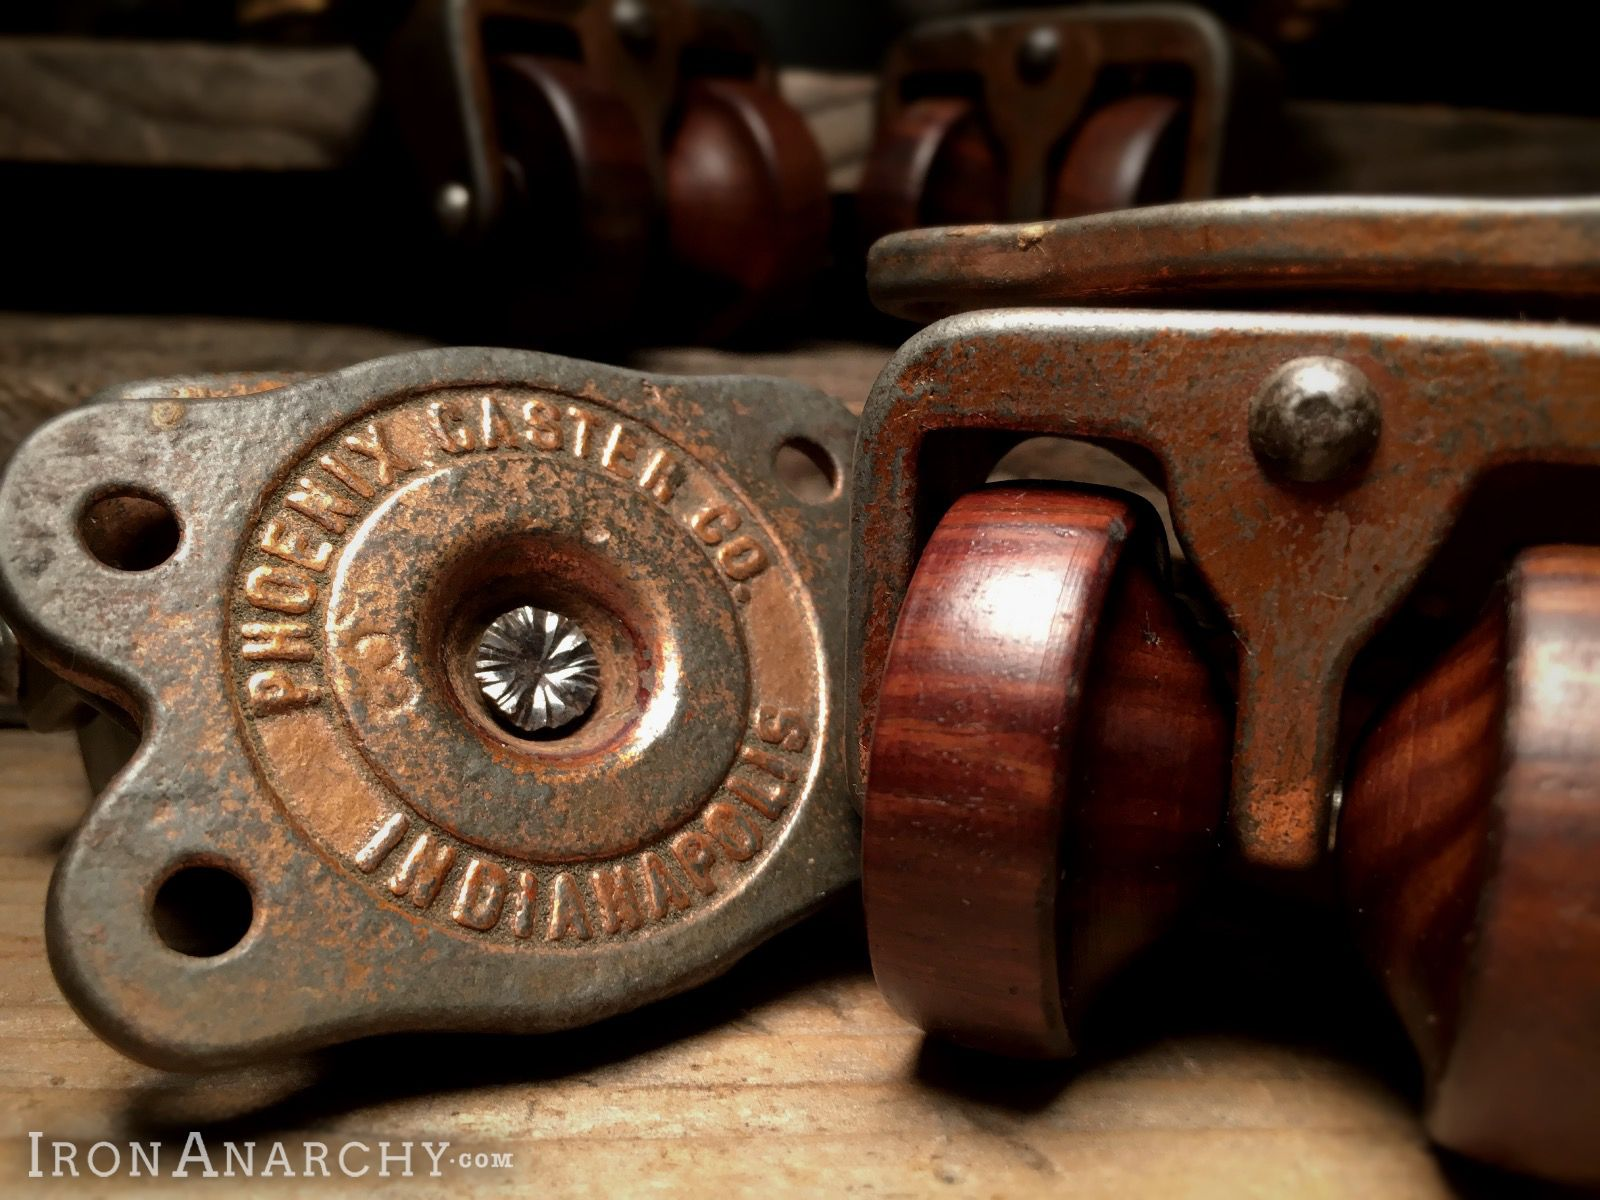 Refurbished Antique Wood Wheel Furniture Casters From IronAnarchy.com